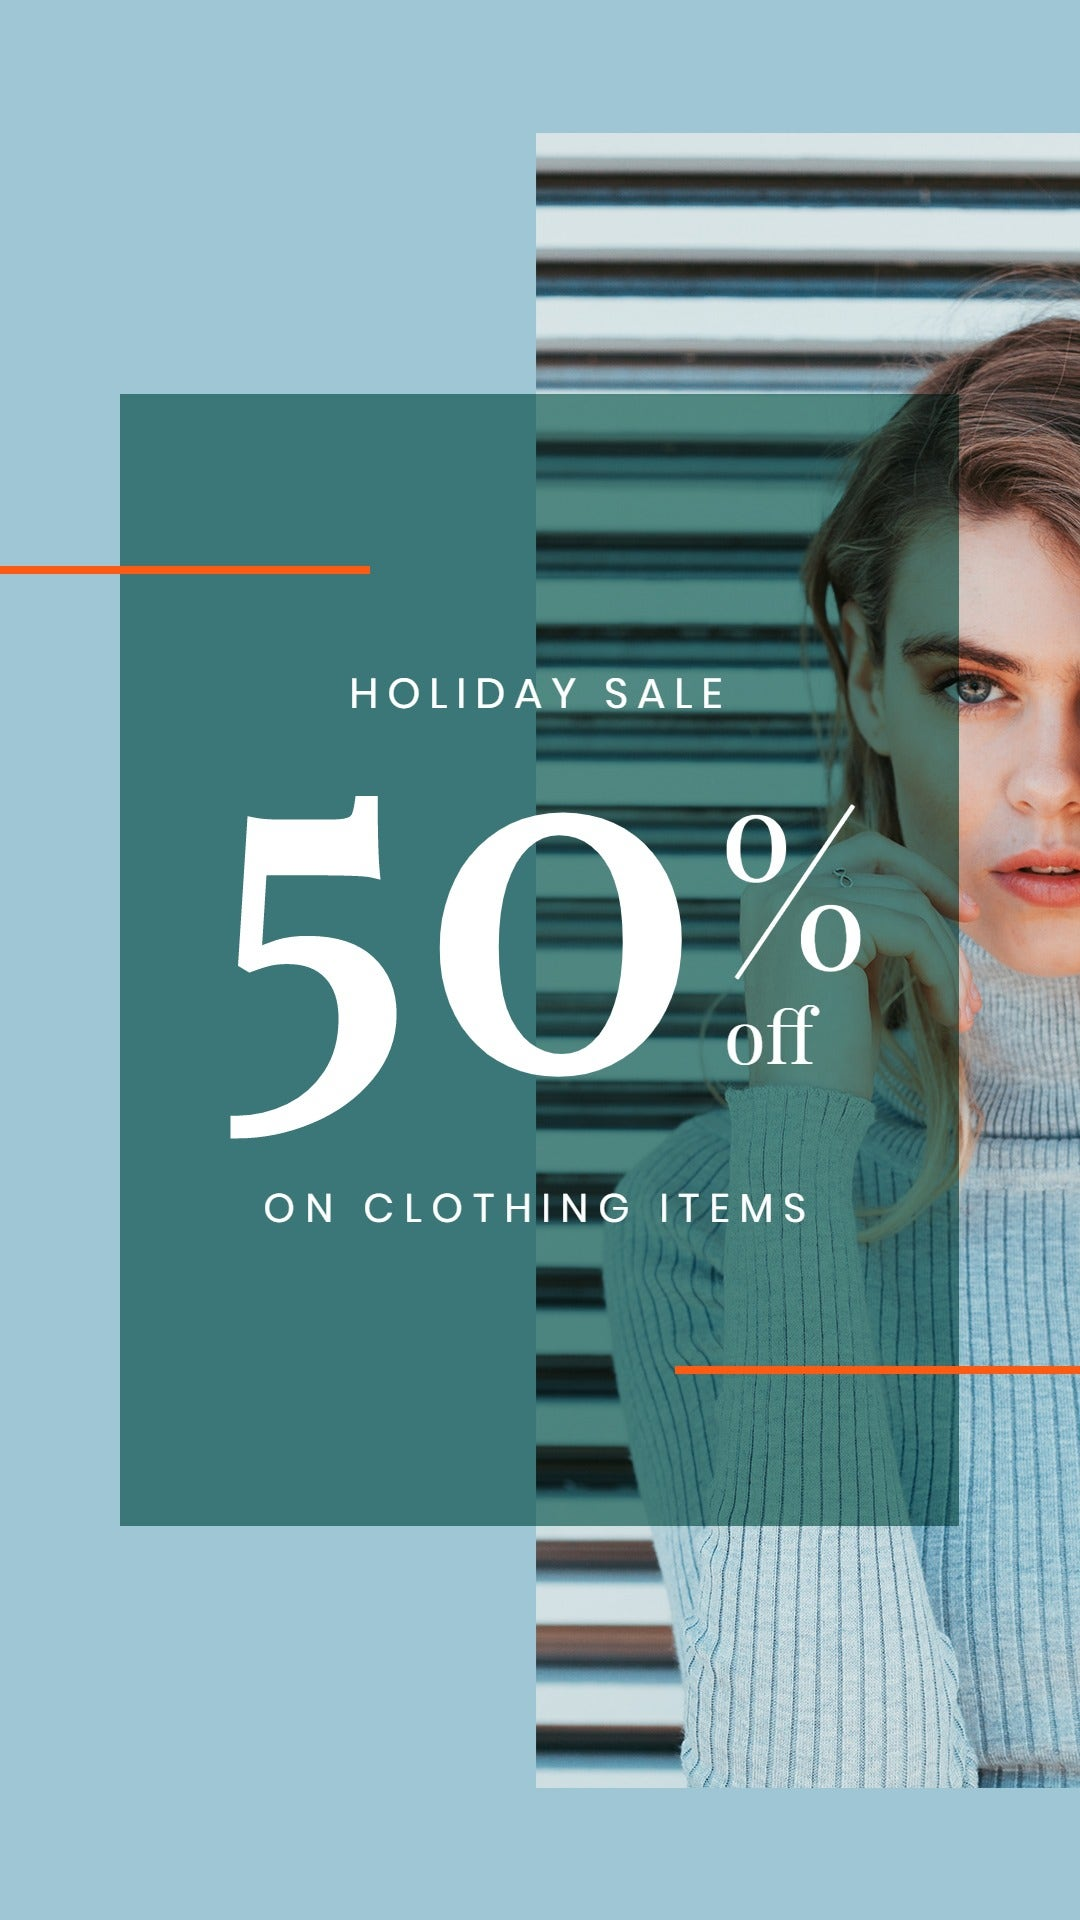 Holiday Collection Sale WhatsApp Post Template